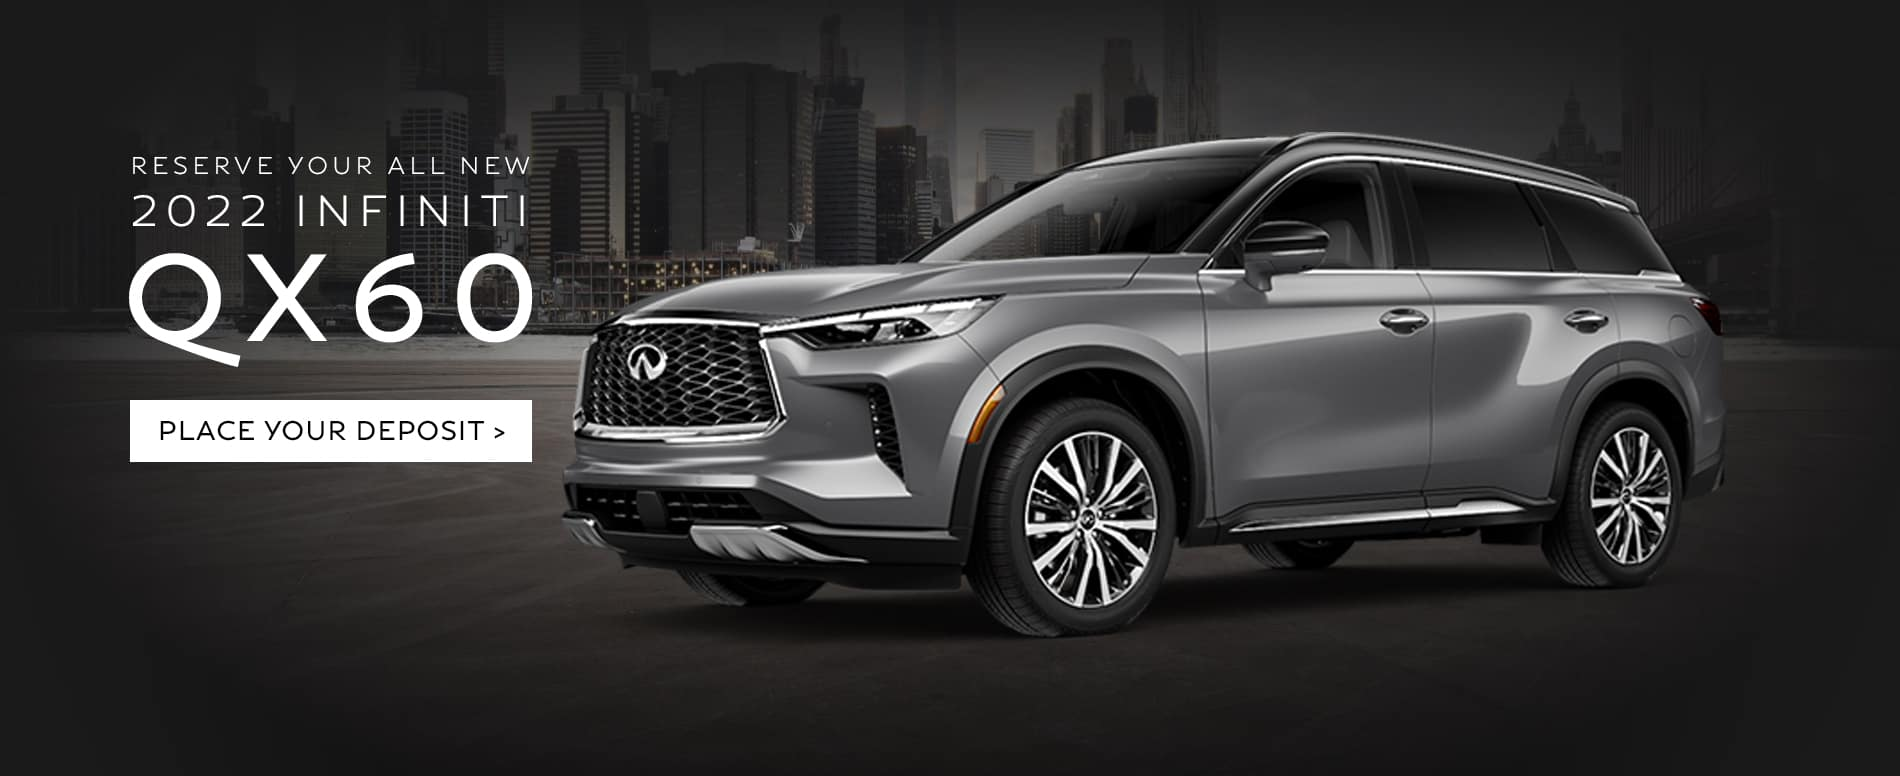 Reserve your all-new 2022 INFINITI QX60 today – arriving autumn 2021